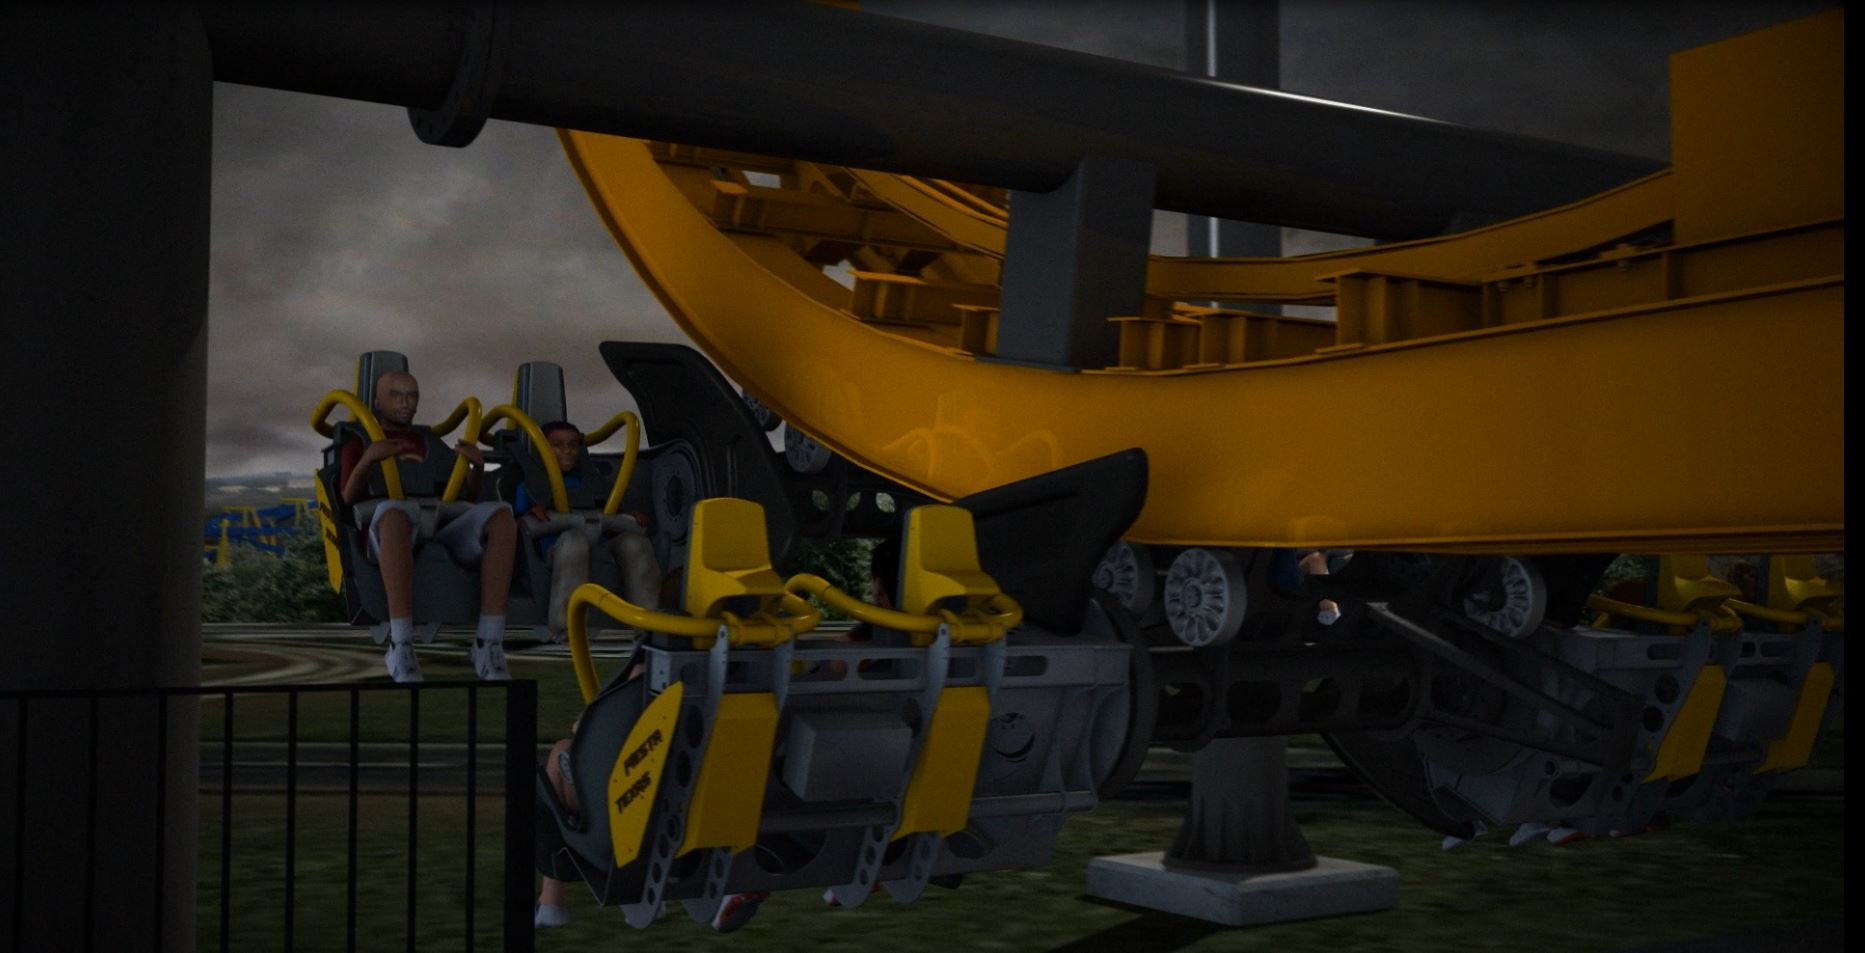 New For 2015 | Roller Coasters, Theme Parks & Attractions Forum